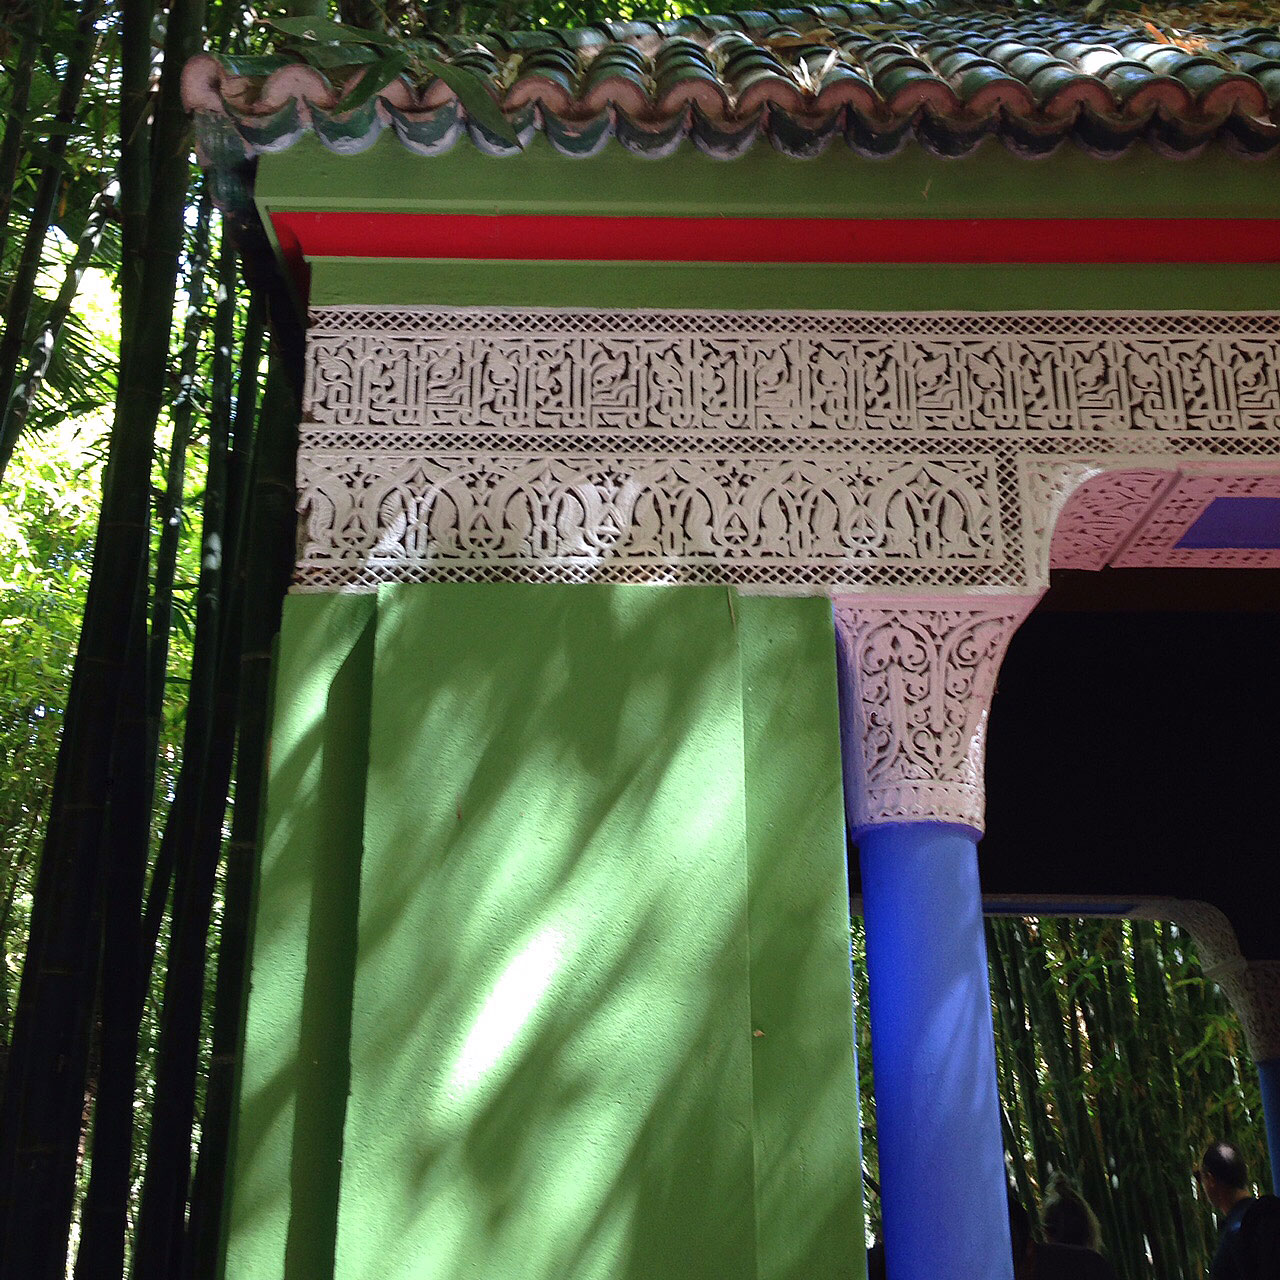 In the garden of Majorelle, in Marrakech